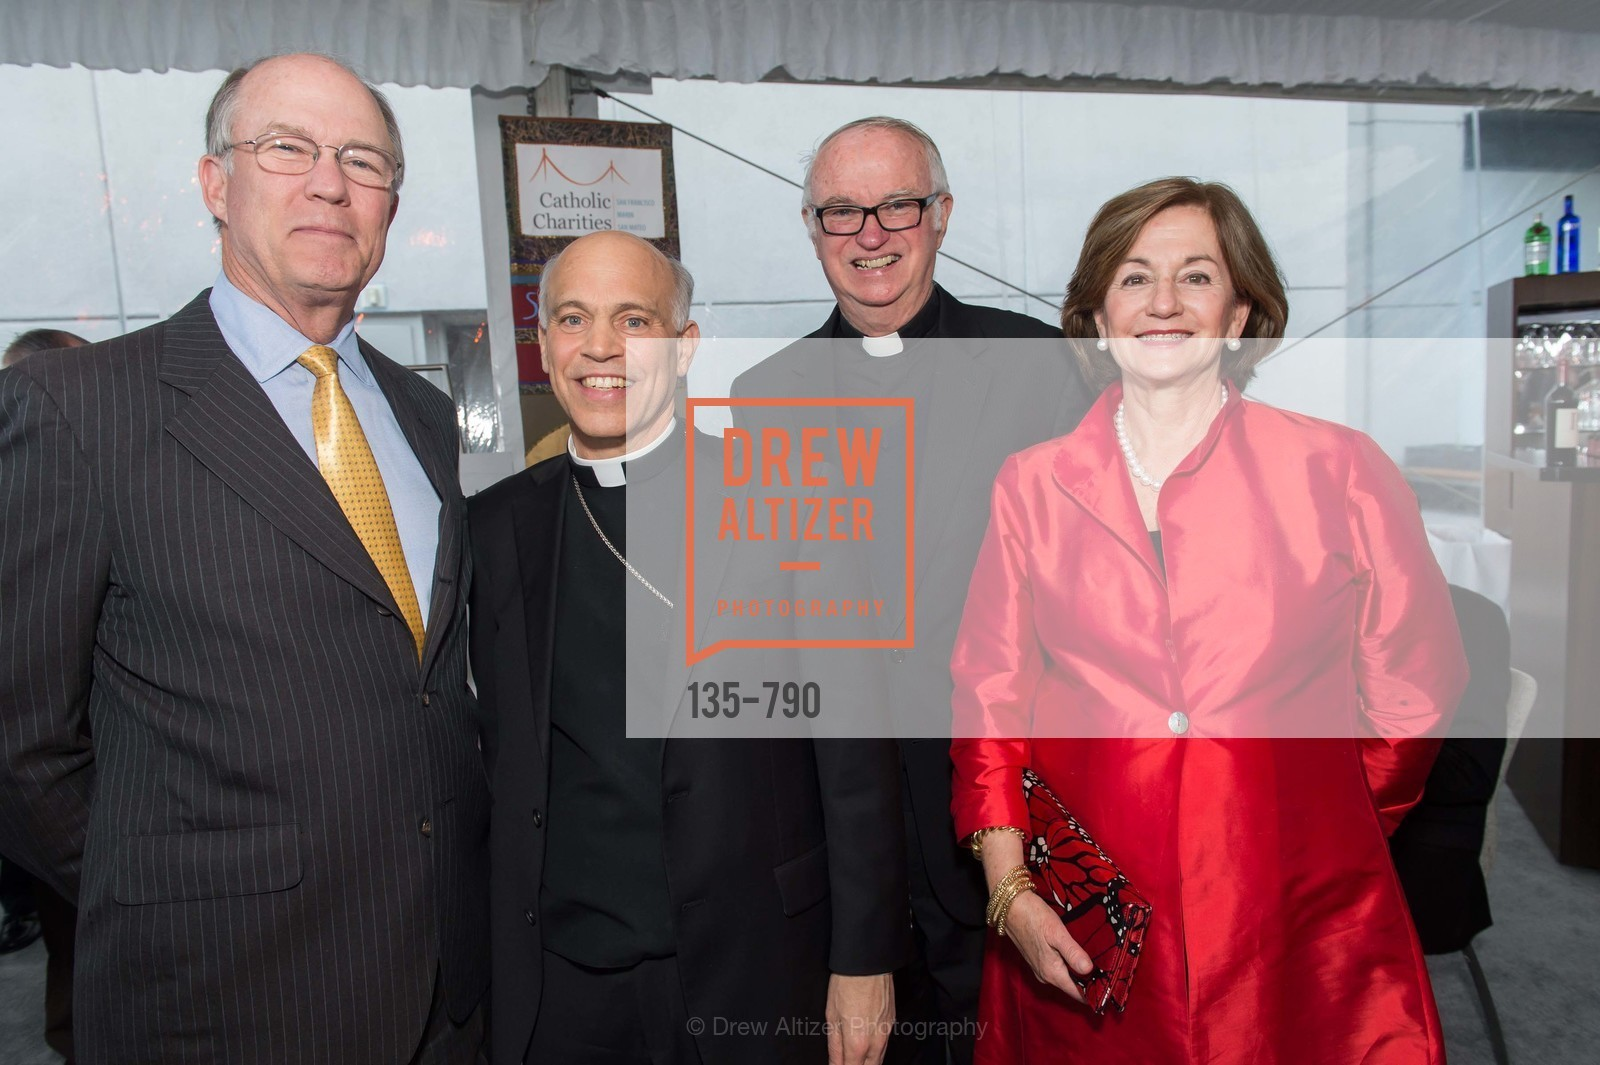 Lee Kenna, Archbishop, Salvatore Cordileone, Father Tony McGuire, Cachi Kenna, Post War and Contemporary Preview at HEDGE GALLERY, US, April 15th, 2015,Drew Altizer, Drew Altizer Photography, full-service agency, private events, San Francisco photographer, photographer california